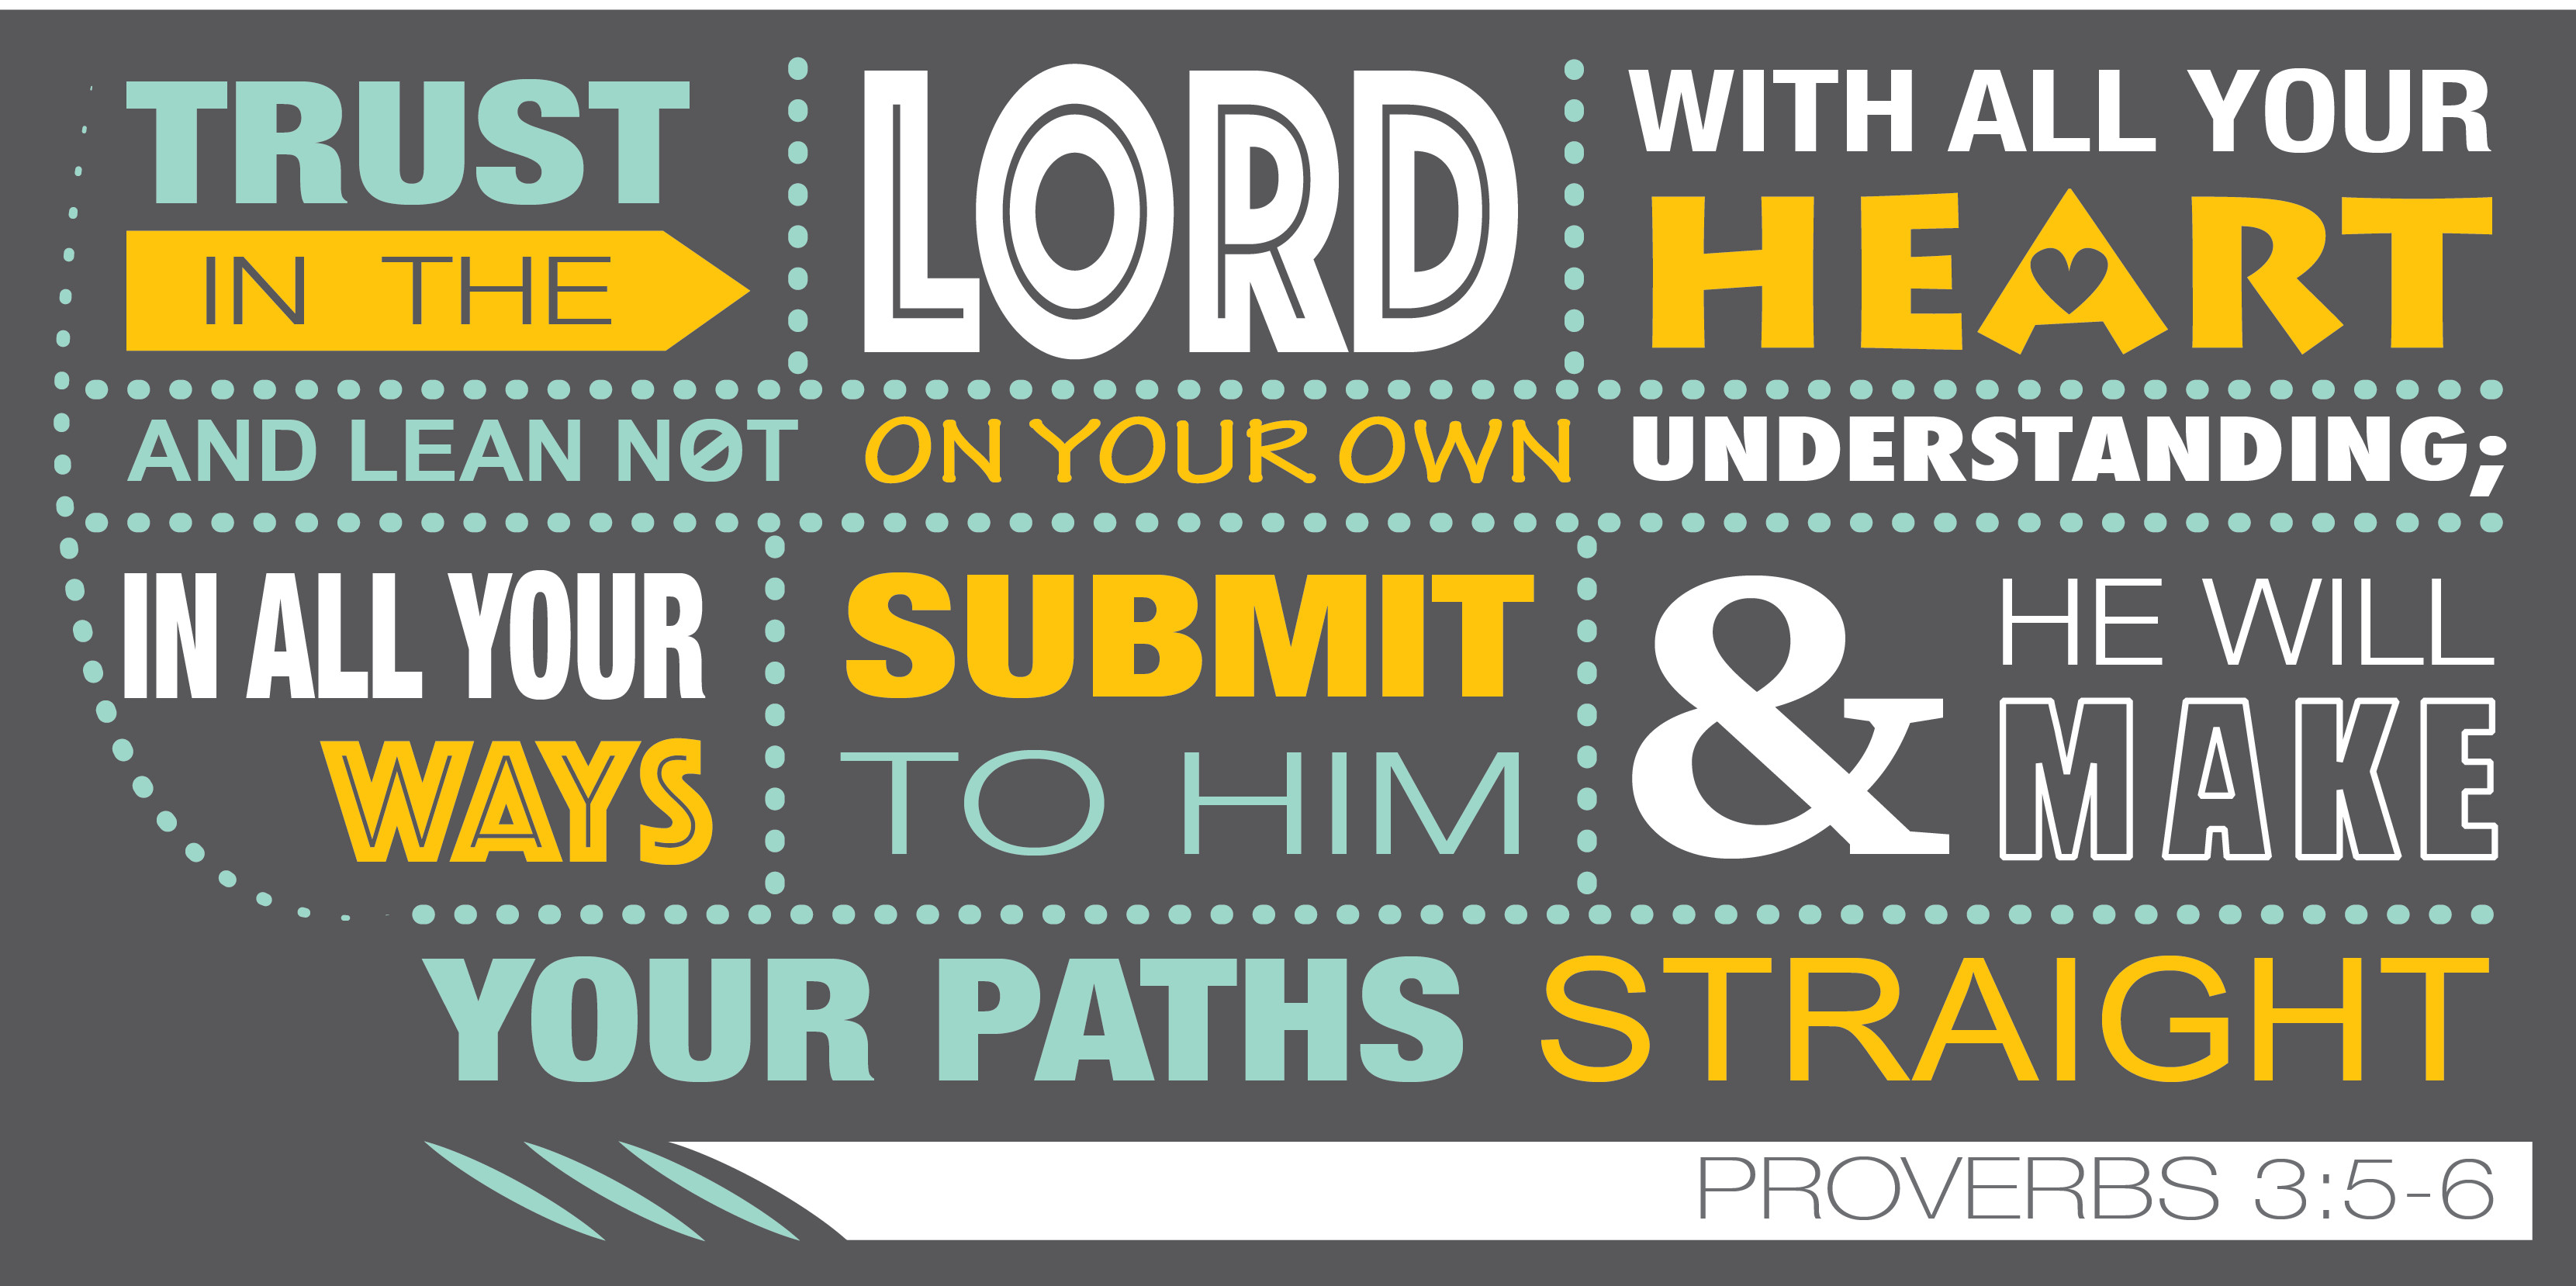 3321x1658 TRUSTING IN GOD- Proverbs 3:5-6